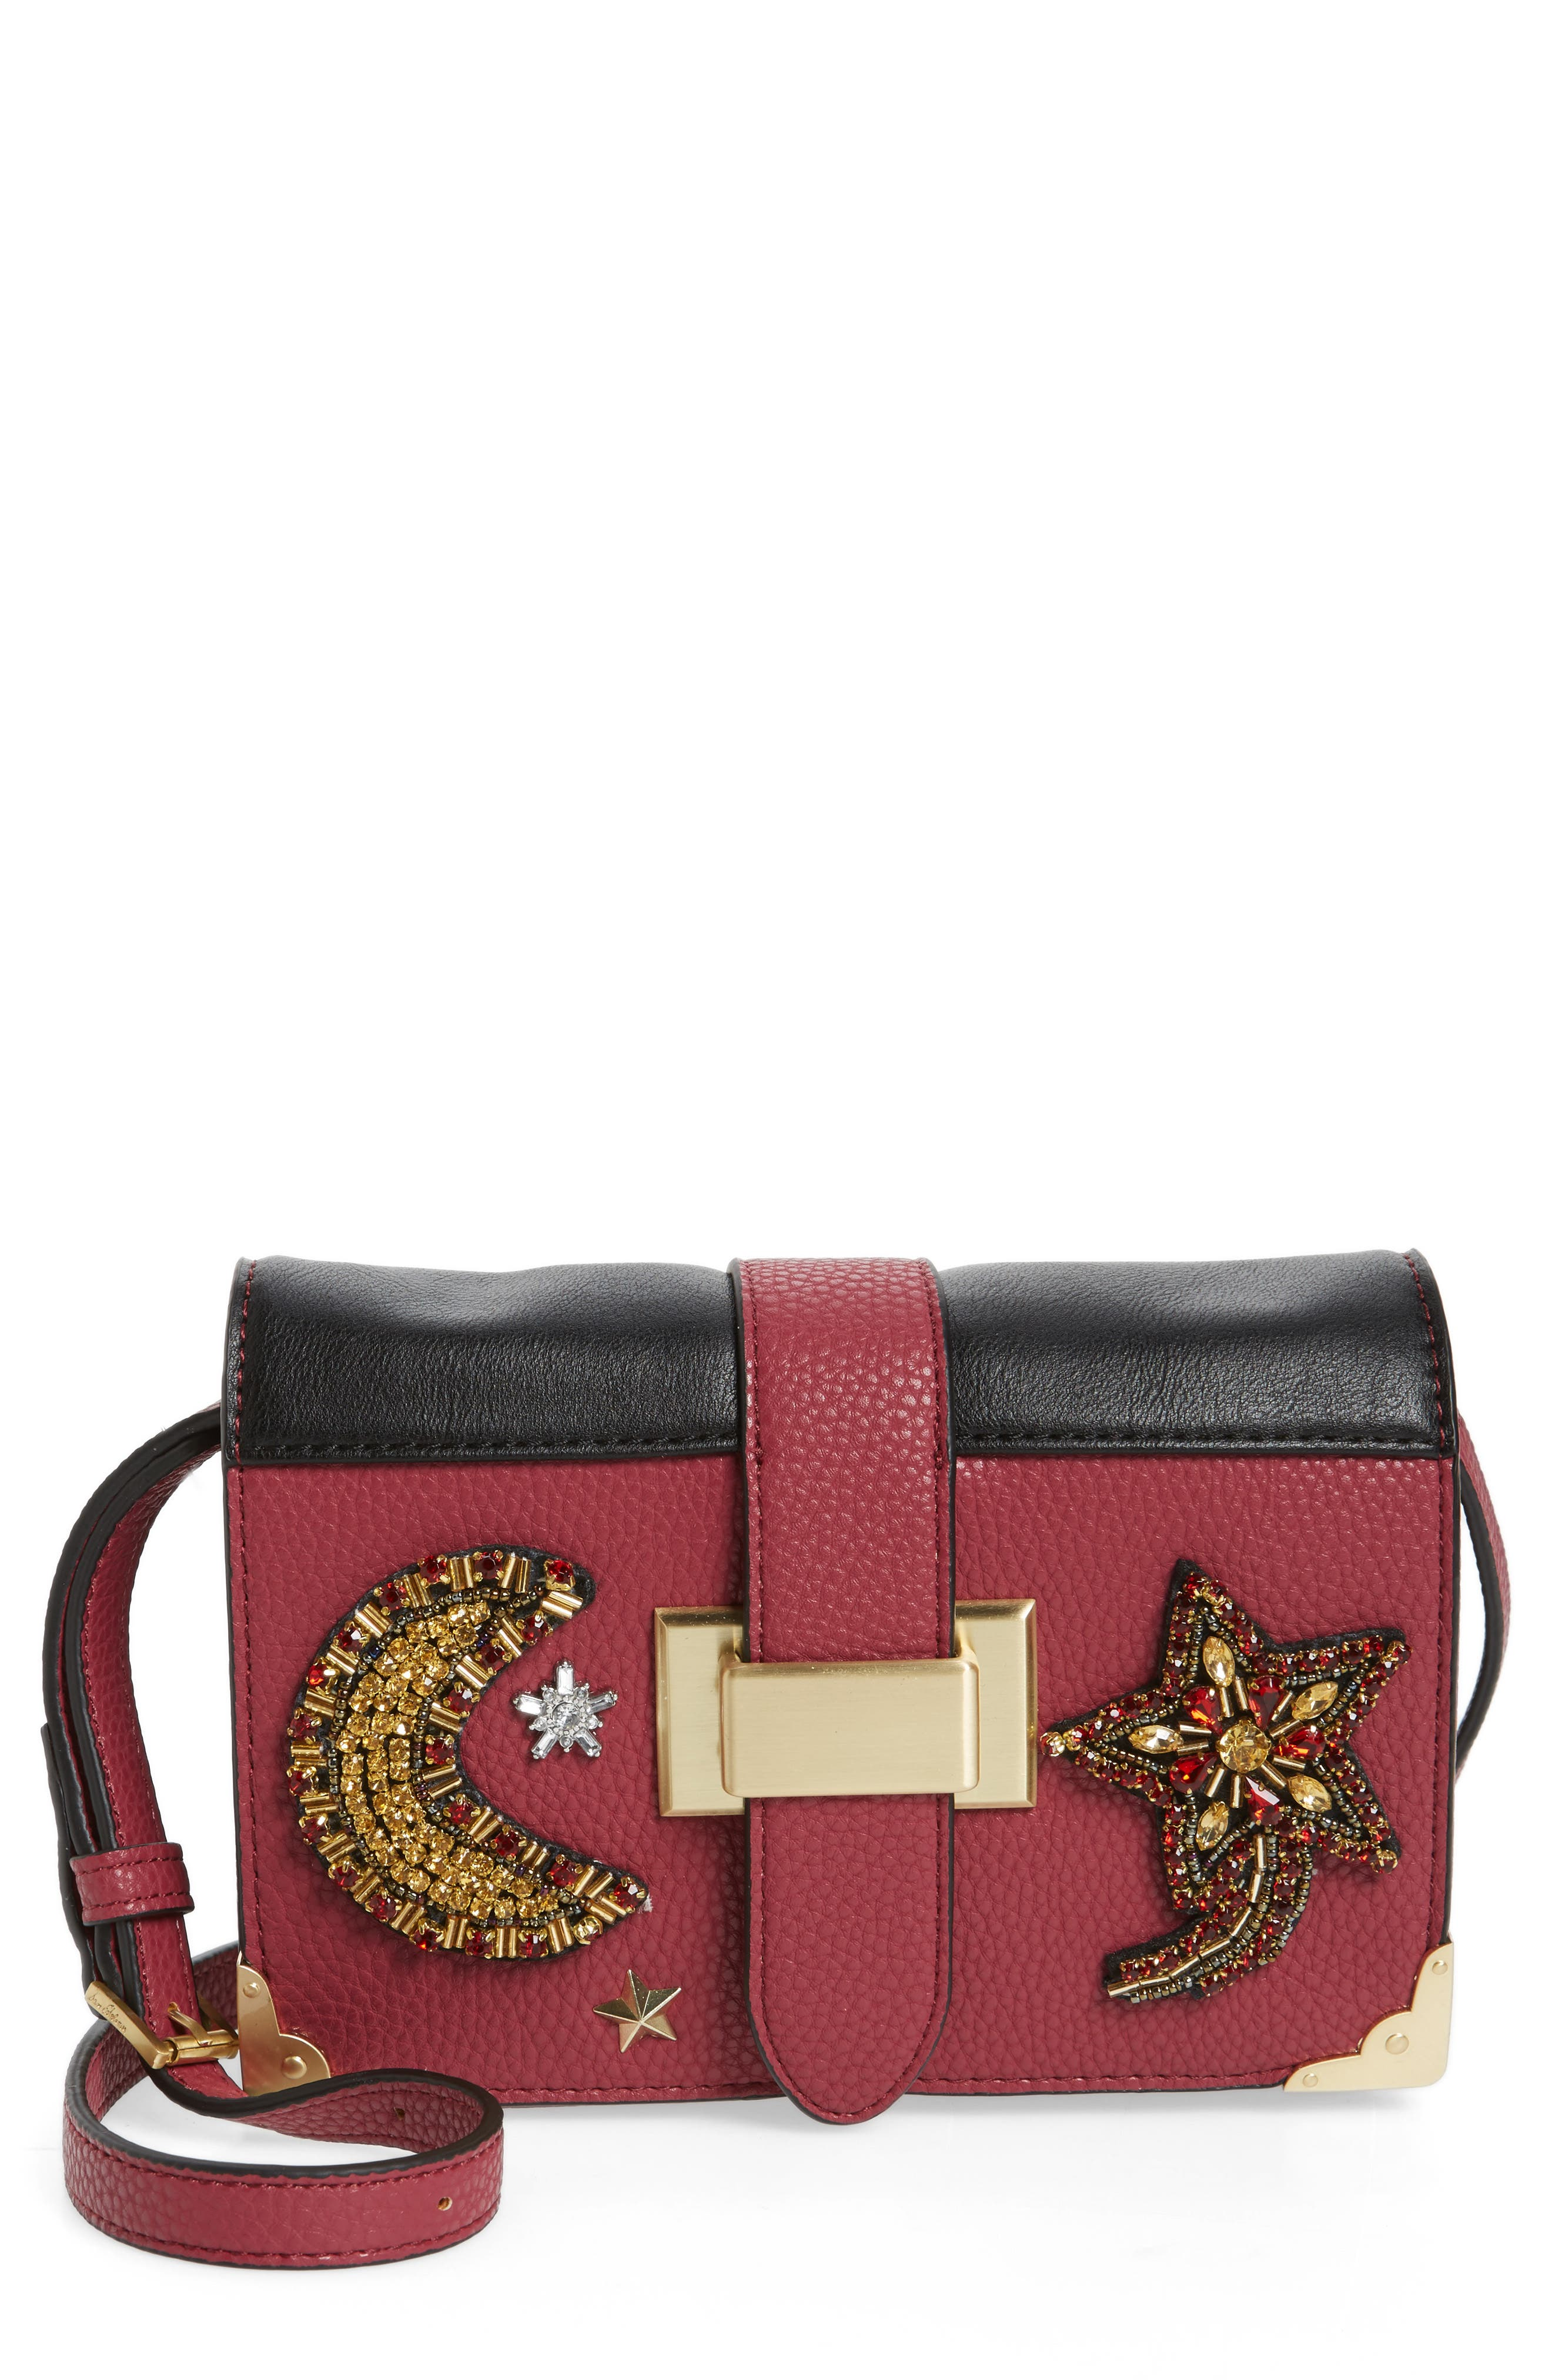 Main Image - Sam Edelman Florence Faux Leather Clutch Wallet